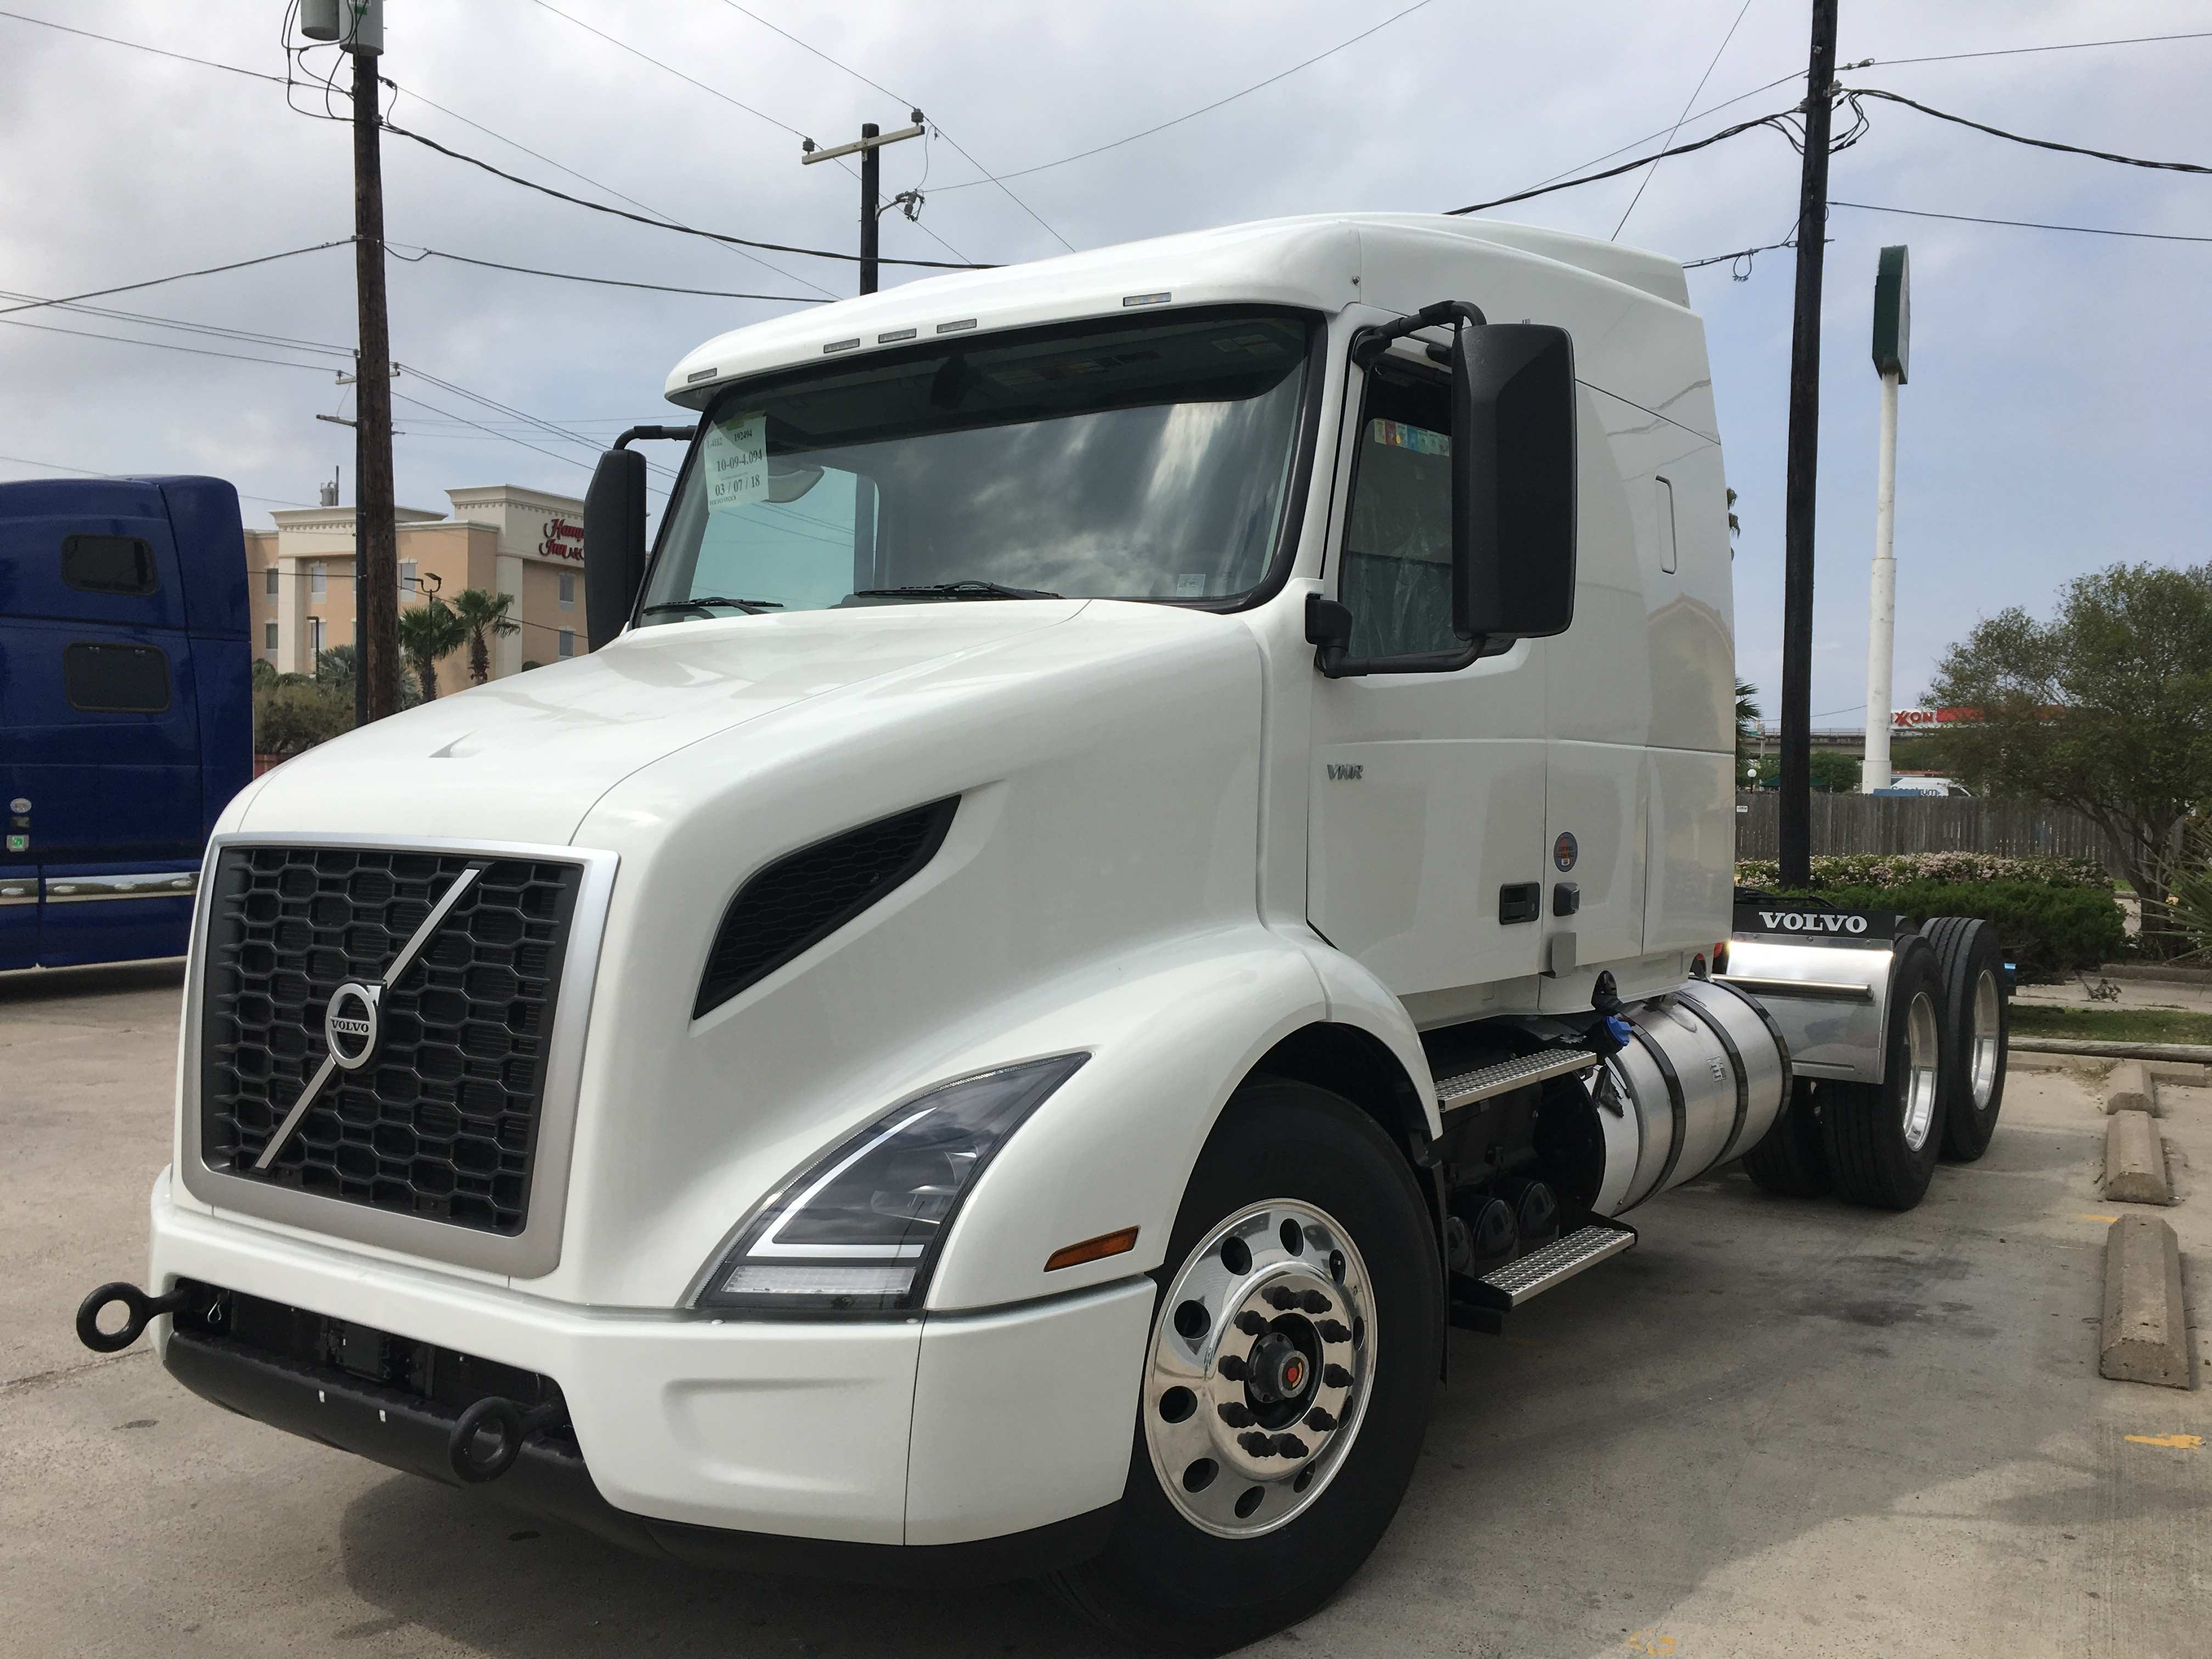 78 Gallery of 2019 Volvo Truck For Sale Price and Review by 2019 Volvo Truck For Sale